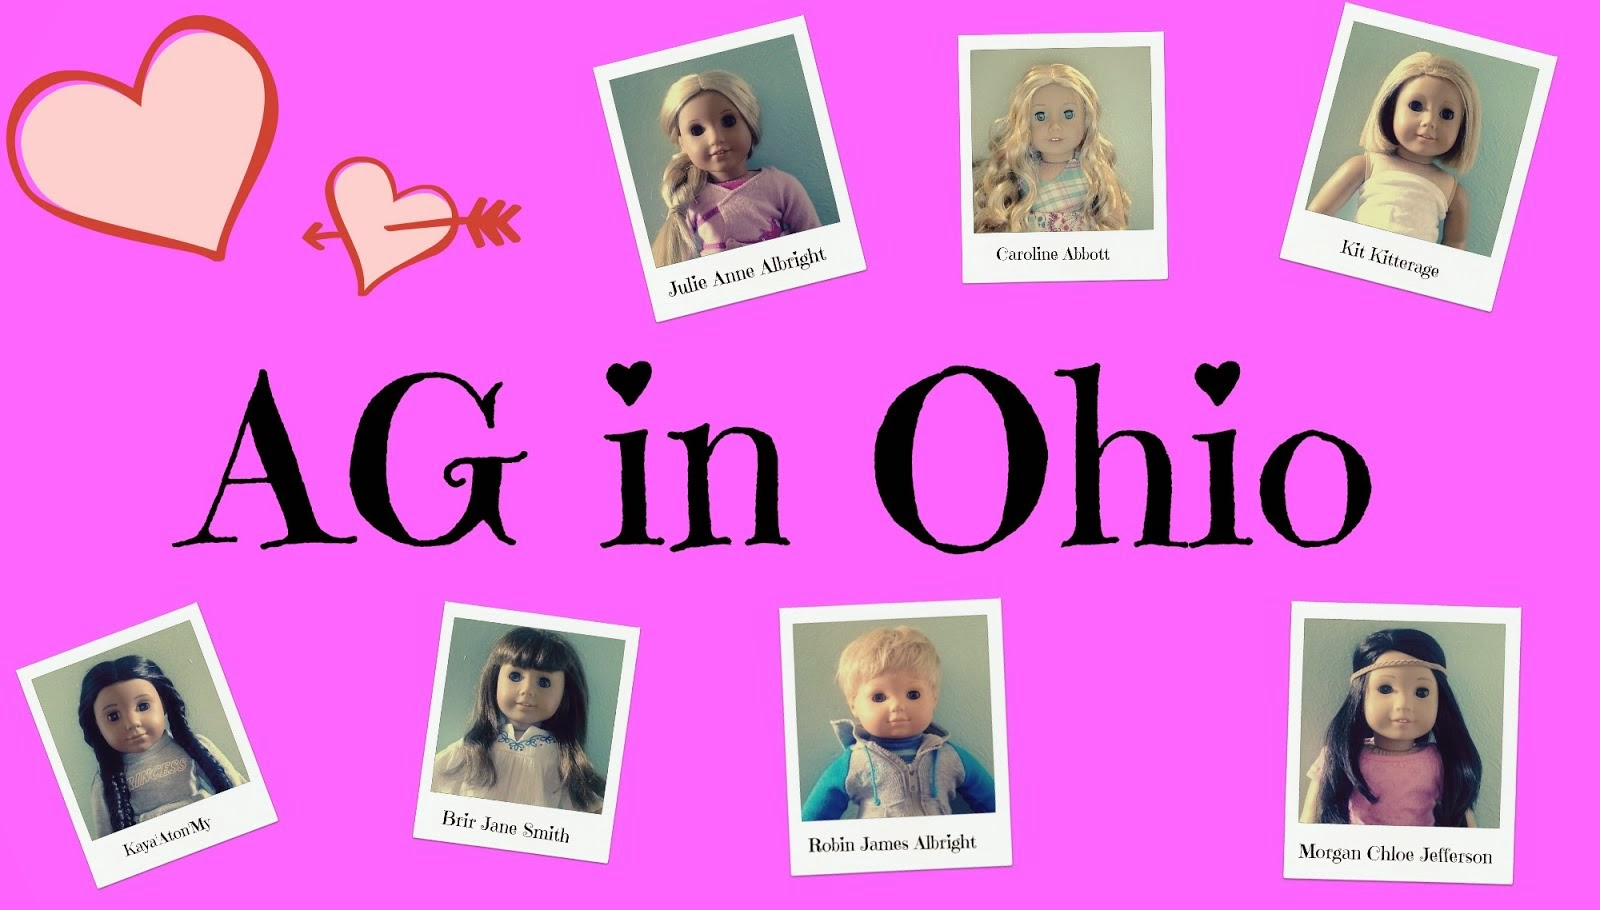 AG in Ohio